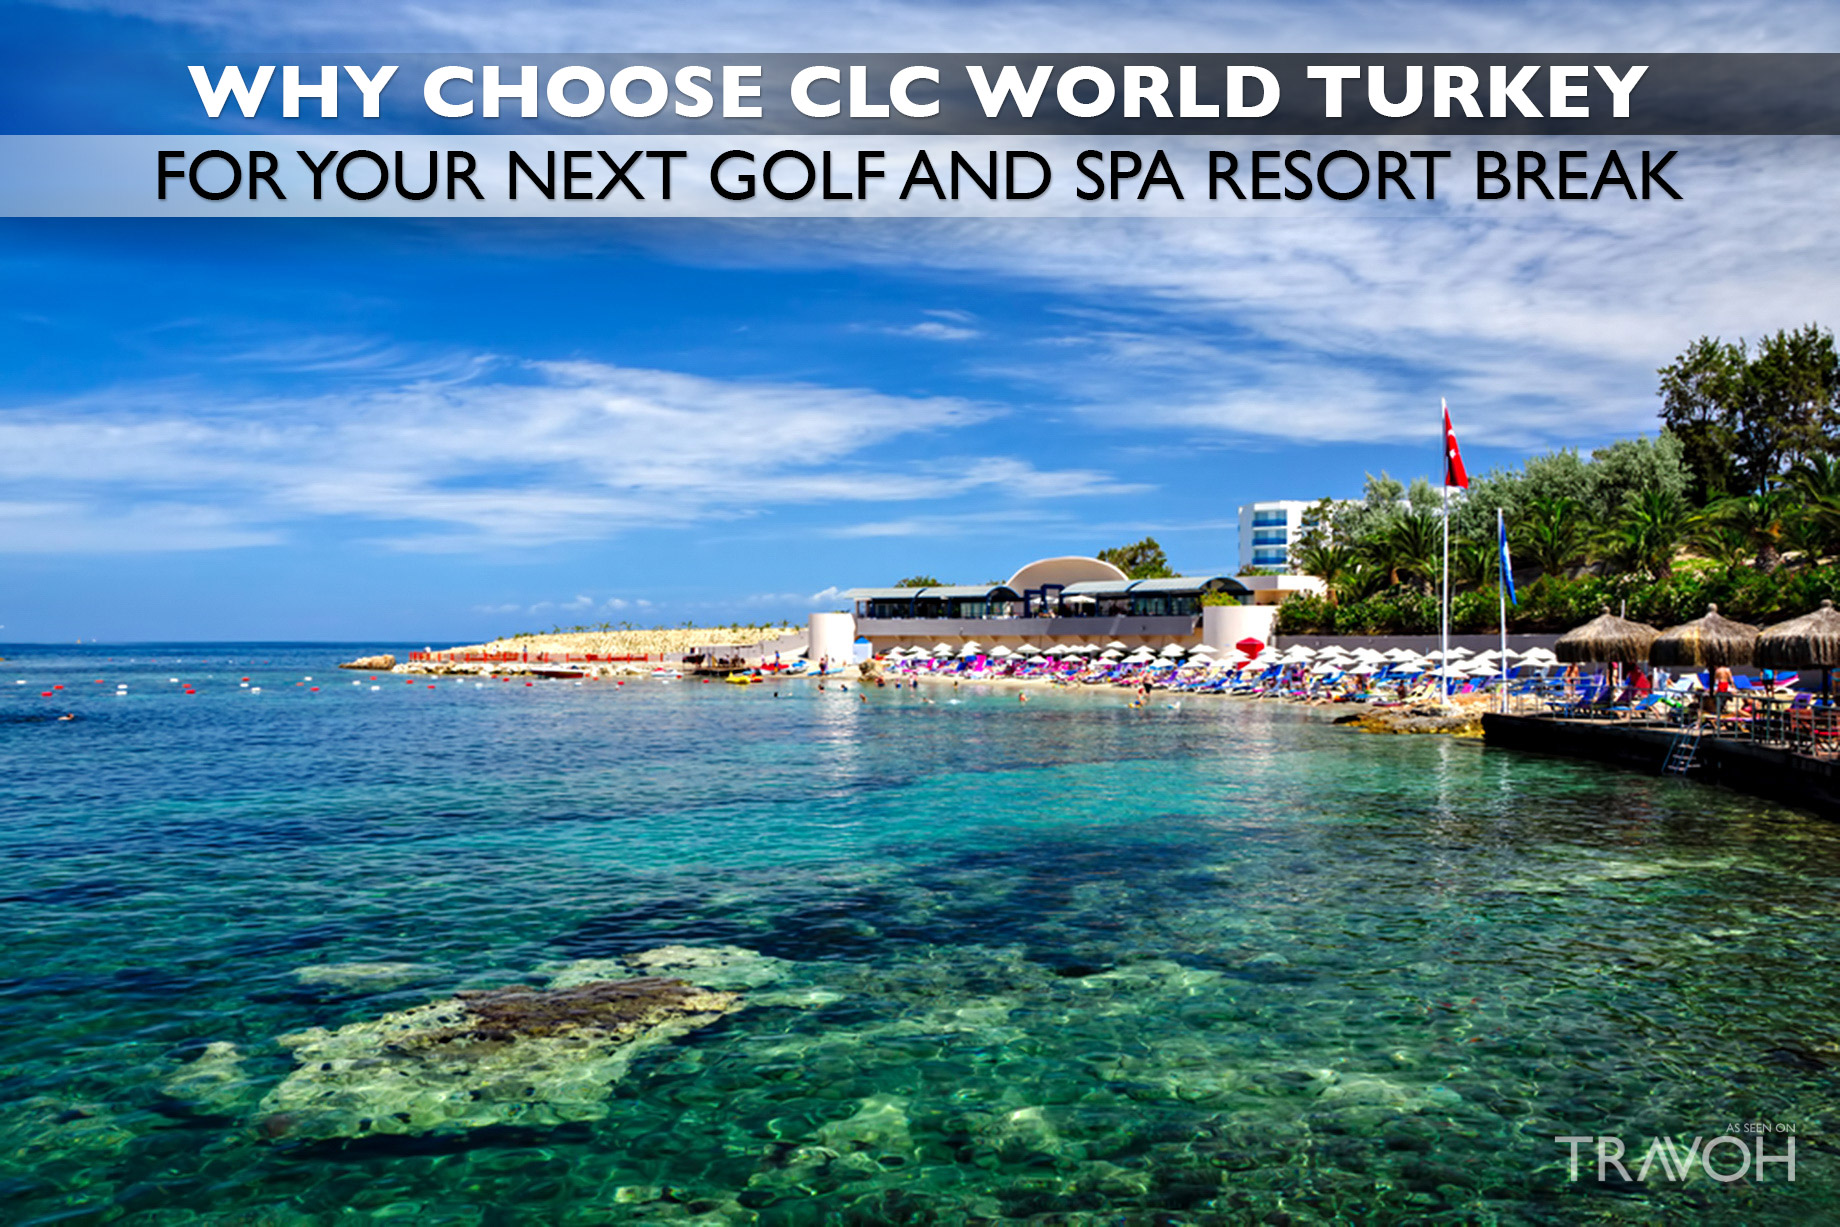 Why Choose CLC World Turkey For Your Next Golf and Spa Break